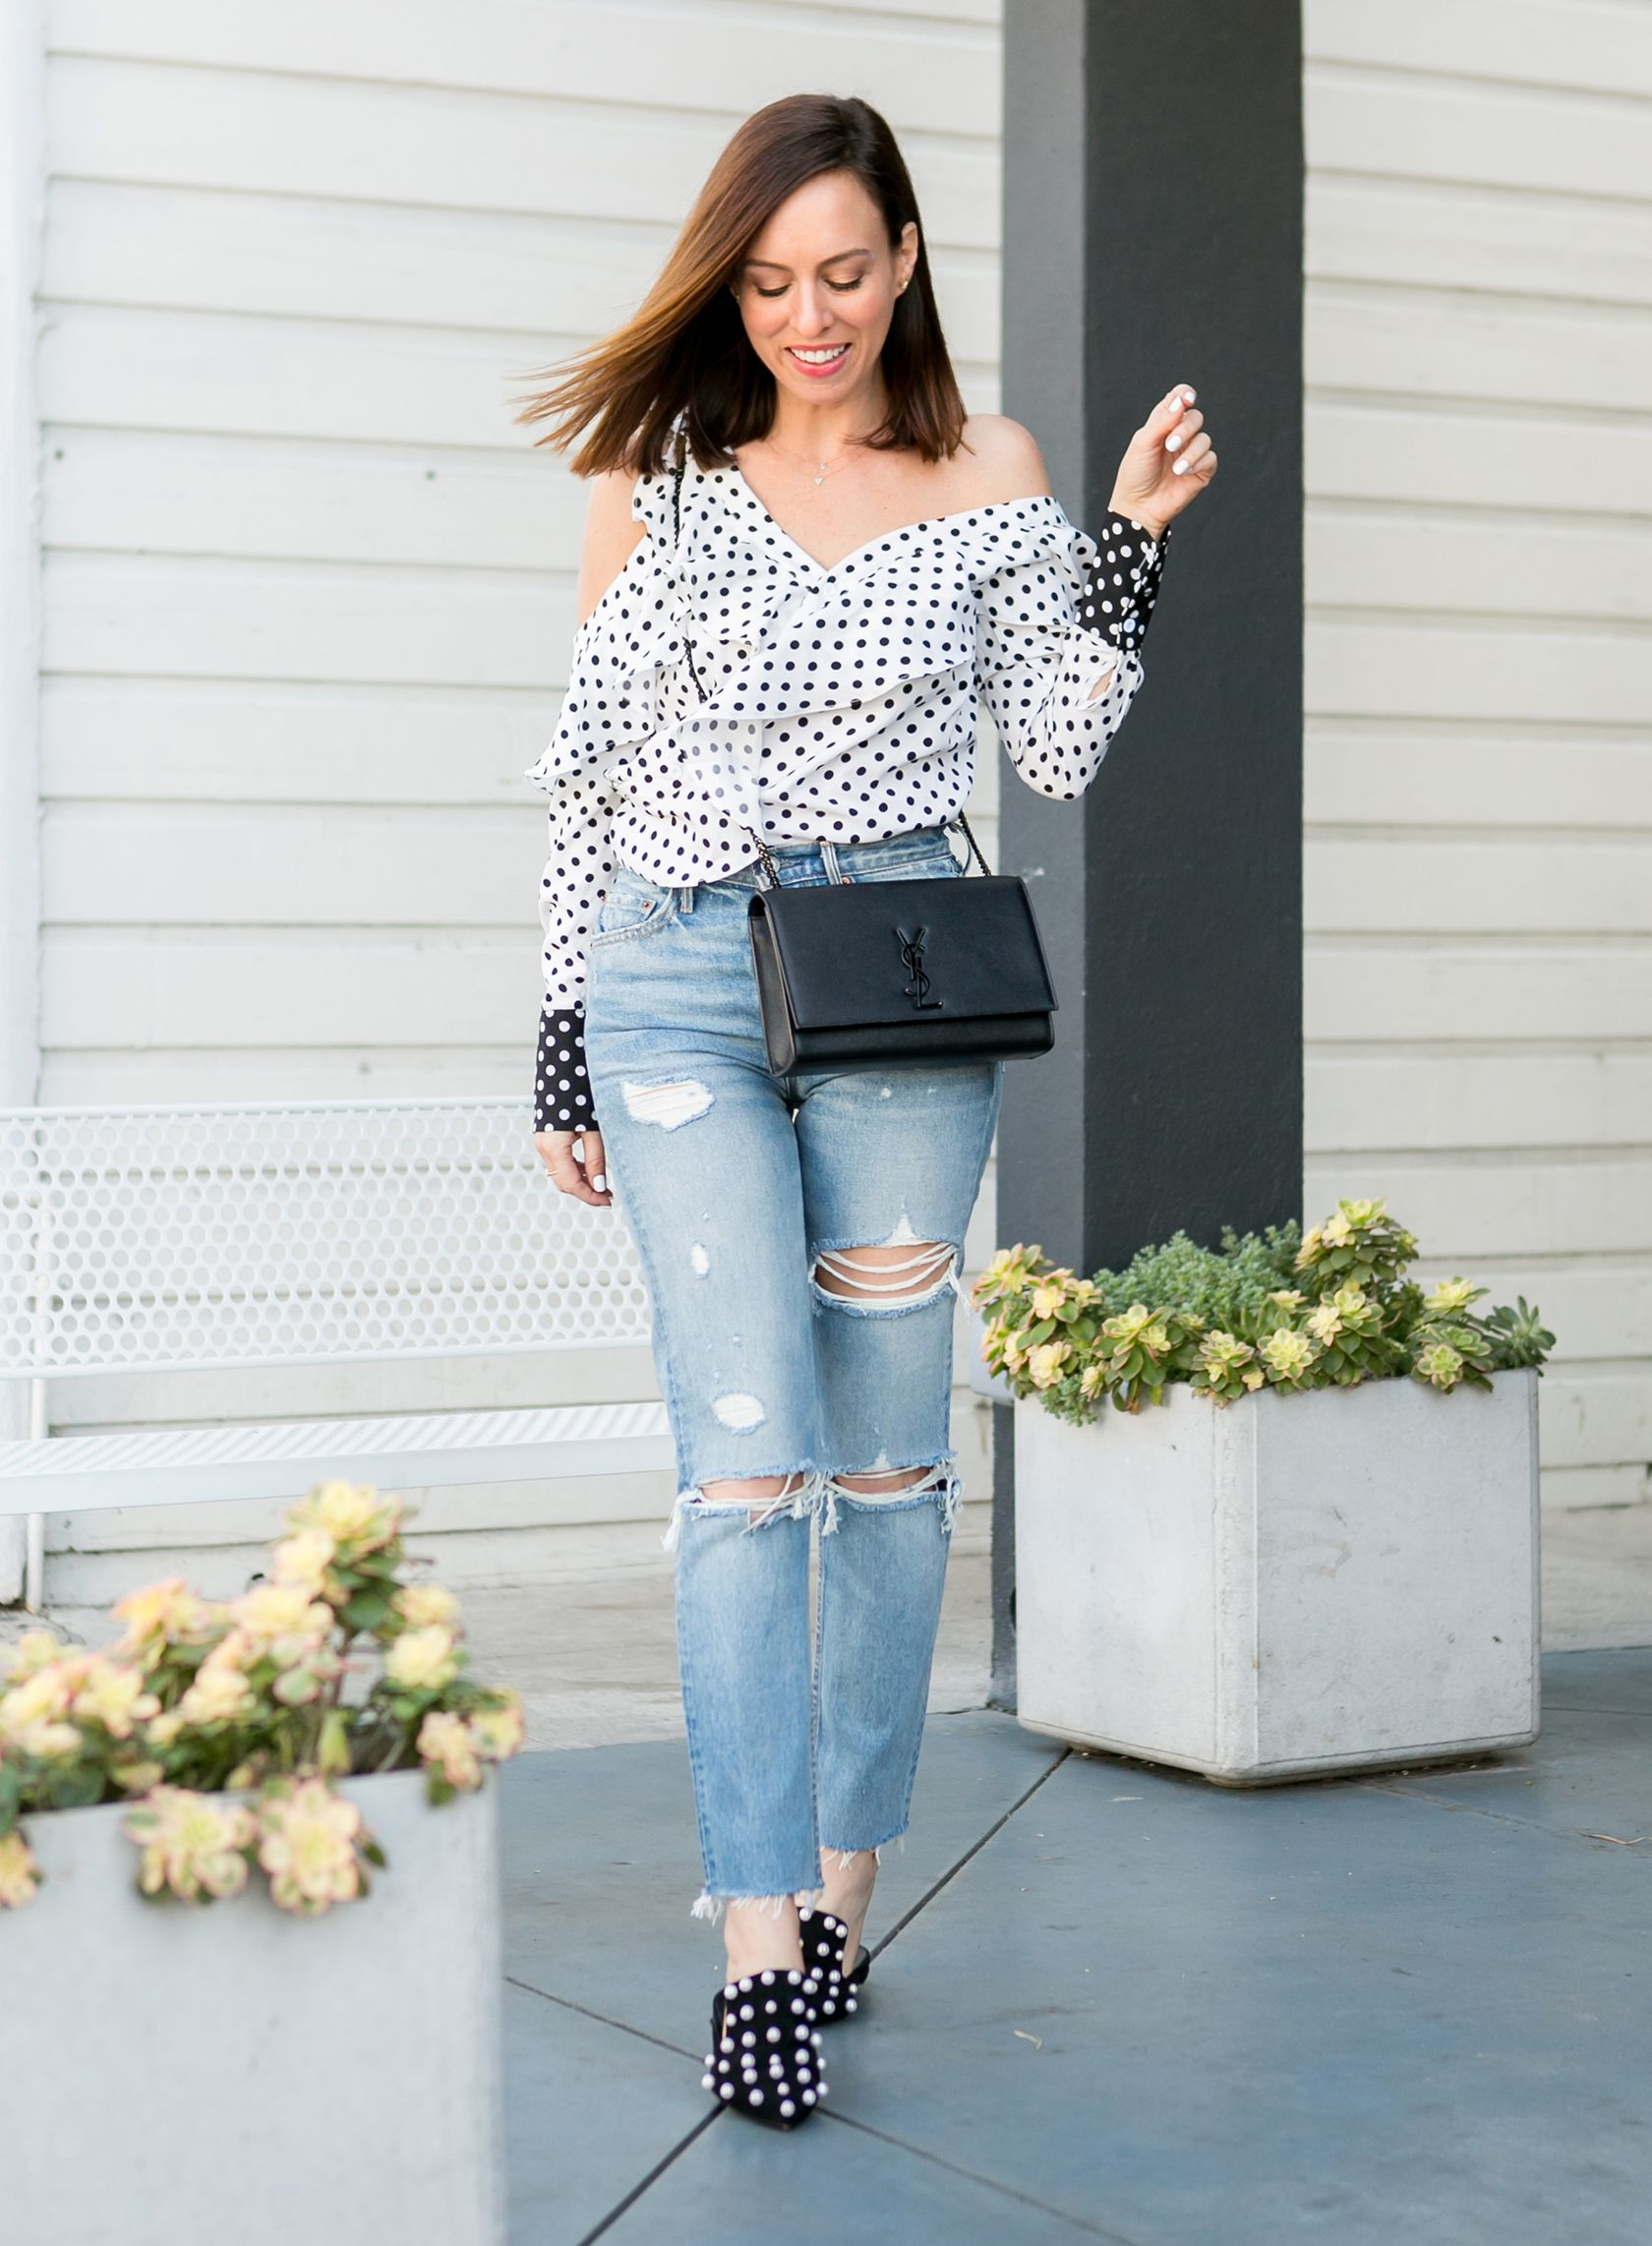 0903375350 Sydne Style shows how to wear the asymmetrical shirt trend for spring in shein  polka dot top #pearls #polkadots #denim #jeans #springtrends #ysl